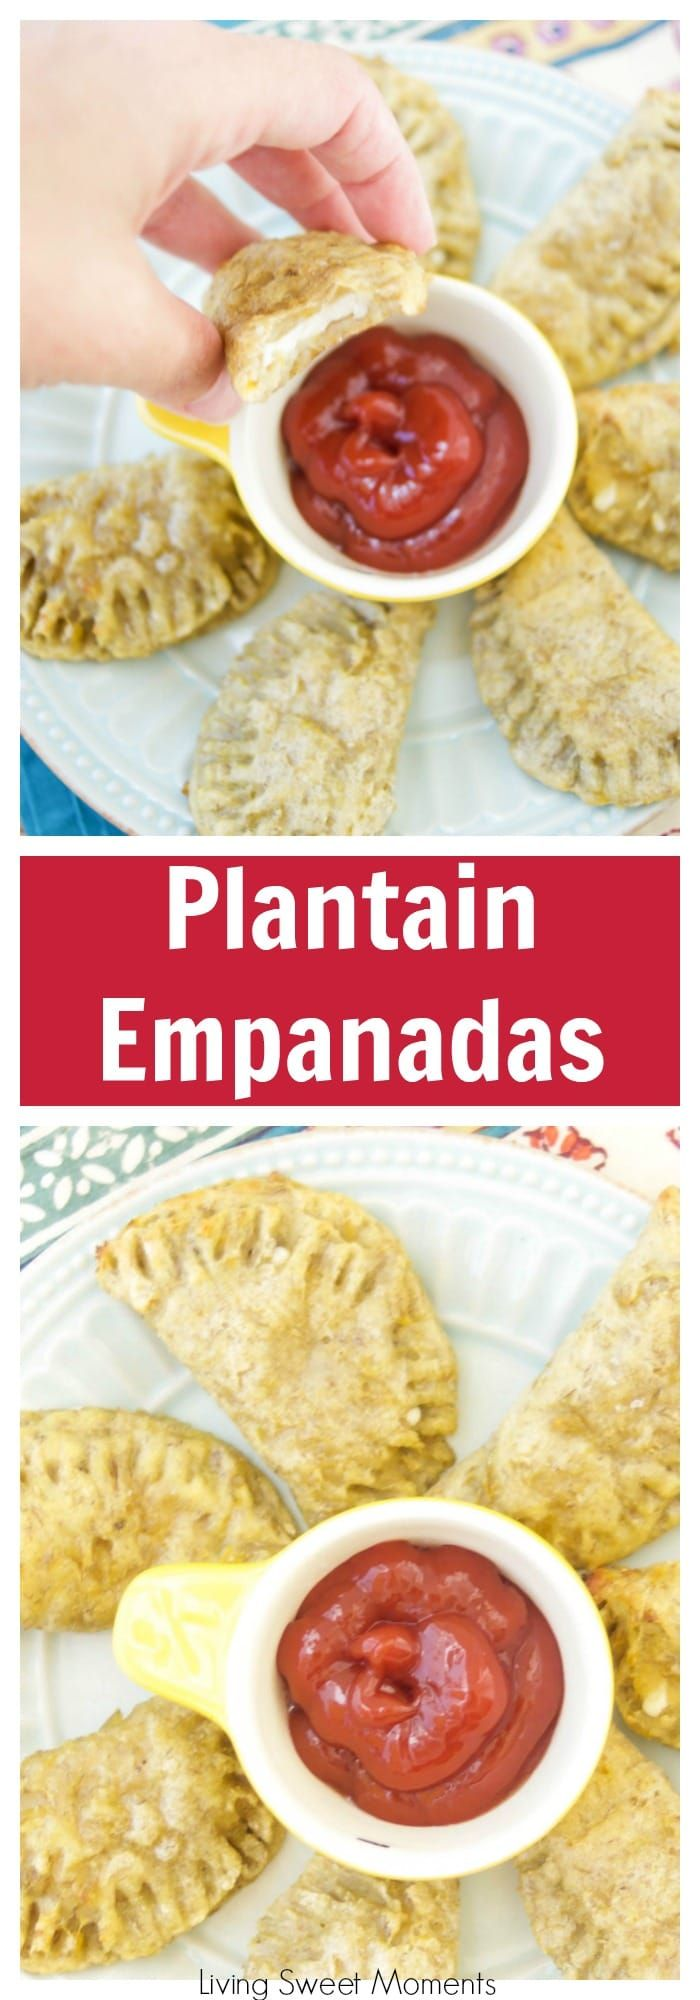 This amazing latin baked plantain empanadas recipe is filled with oozy cheese and is the perfect finger appetizer to any party or celebration. More delicious recipes at livingsweetmoments.com  via @Livingsmoments